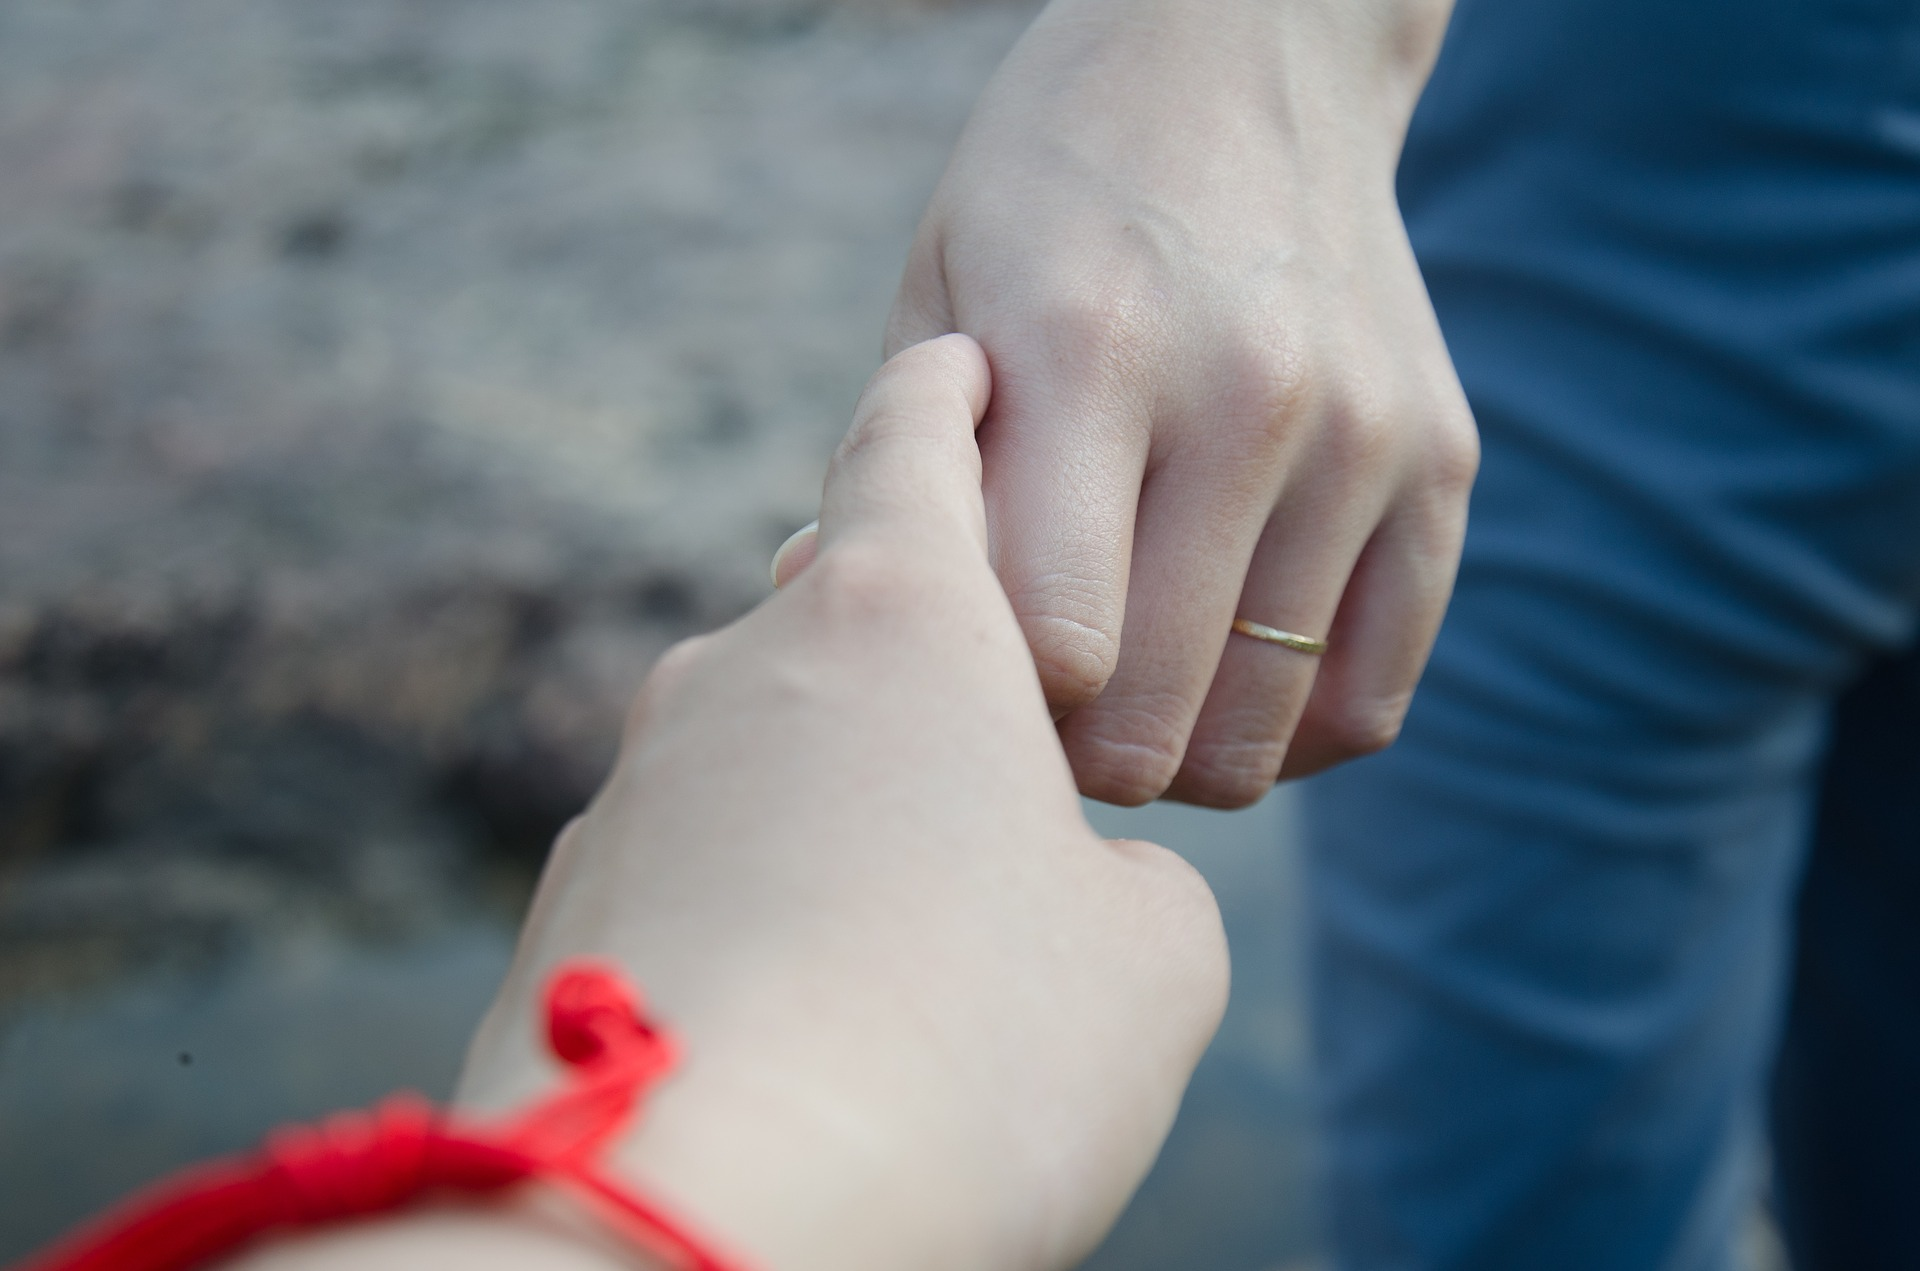 Attachment styles and how they affect relationships